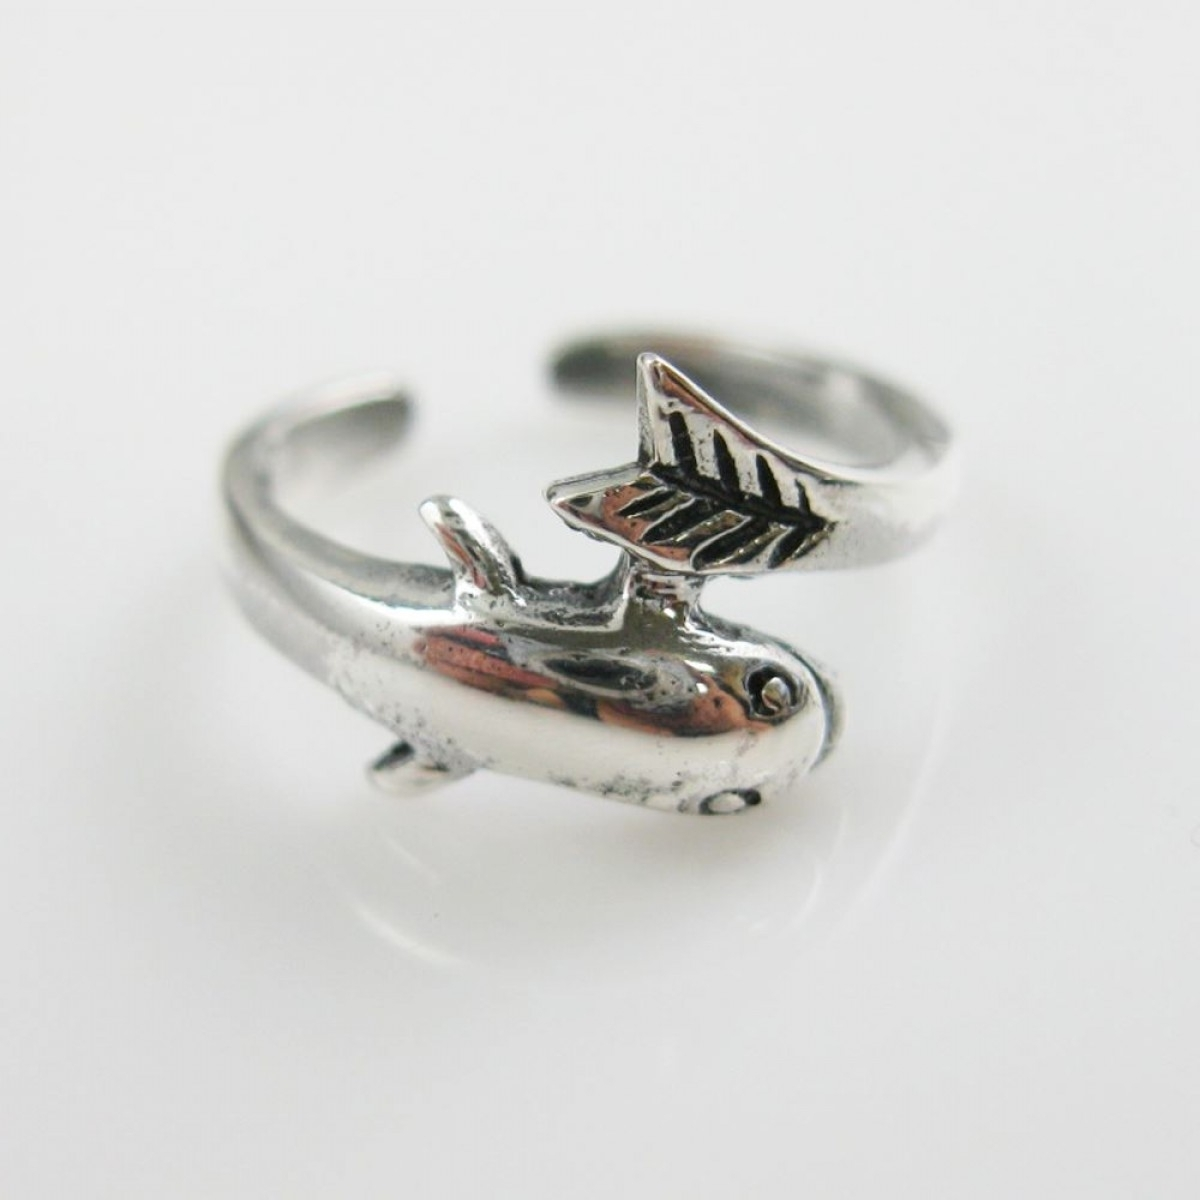 Fish Ring | Ecuatwitt Within Most Popular Non Adjustable Sterling Silver Toe Rings (View 8 of 15)